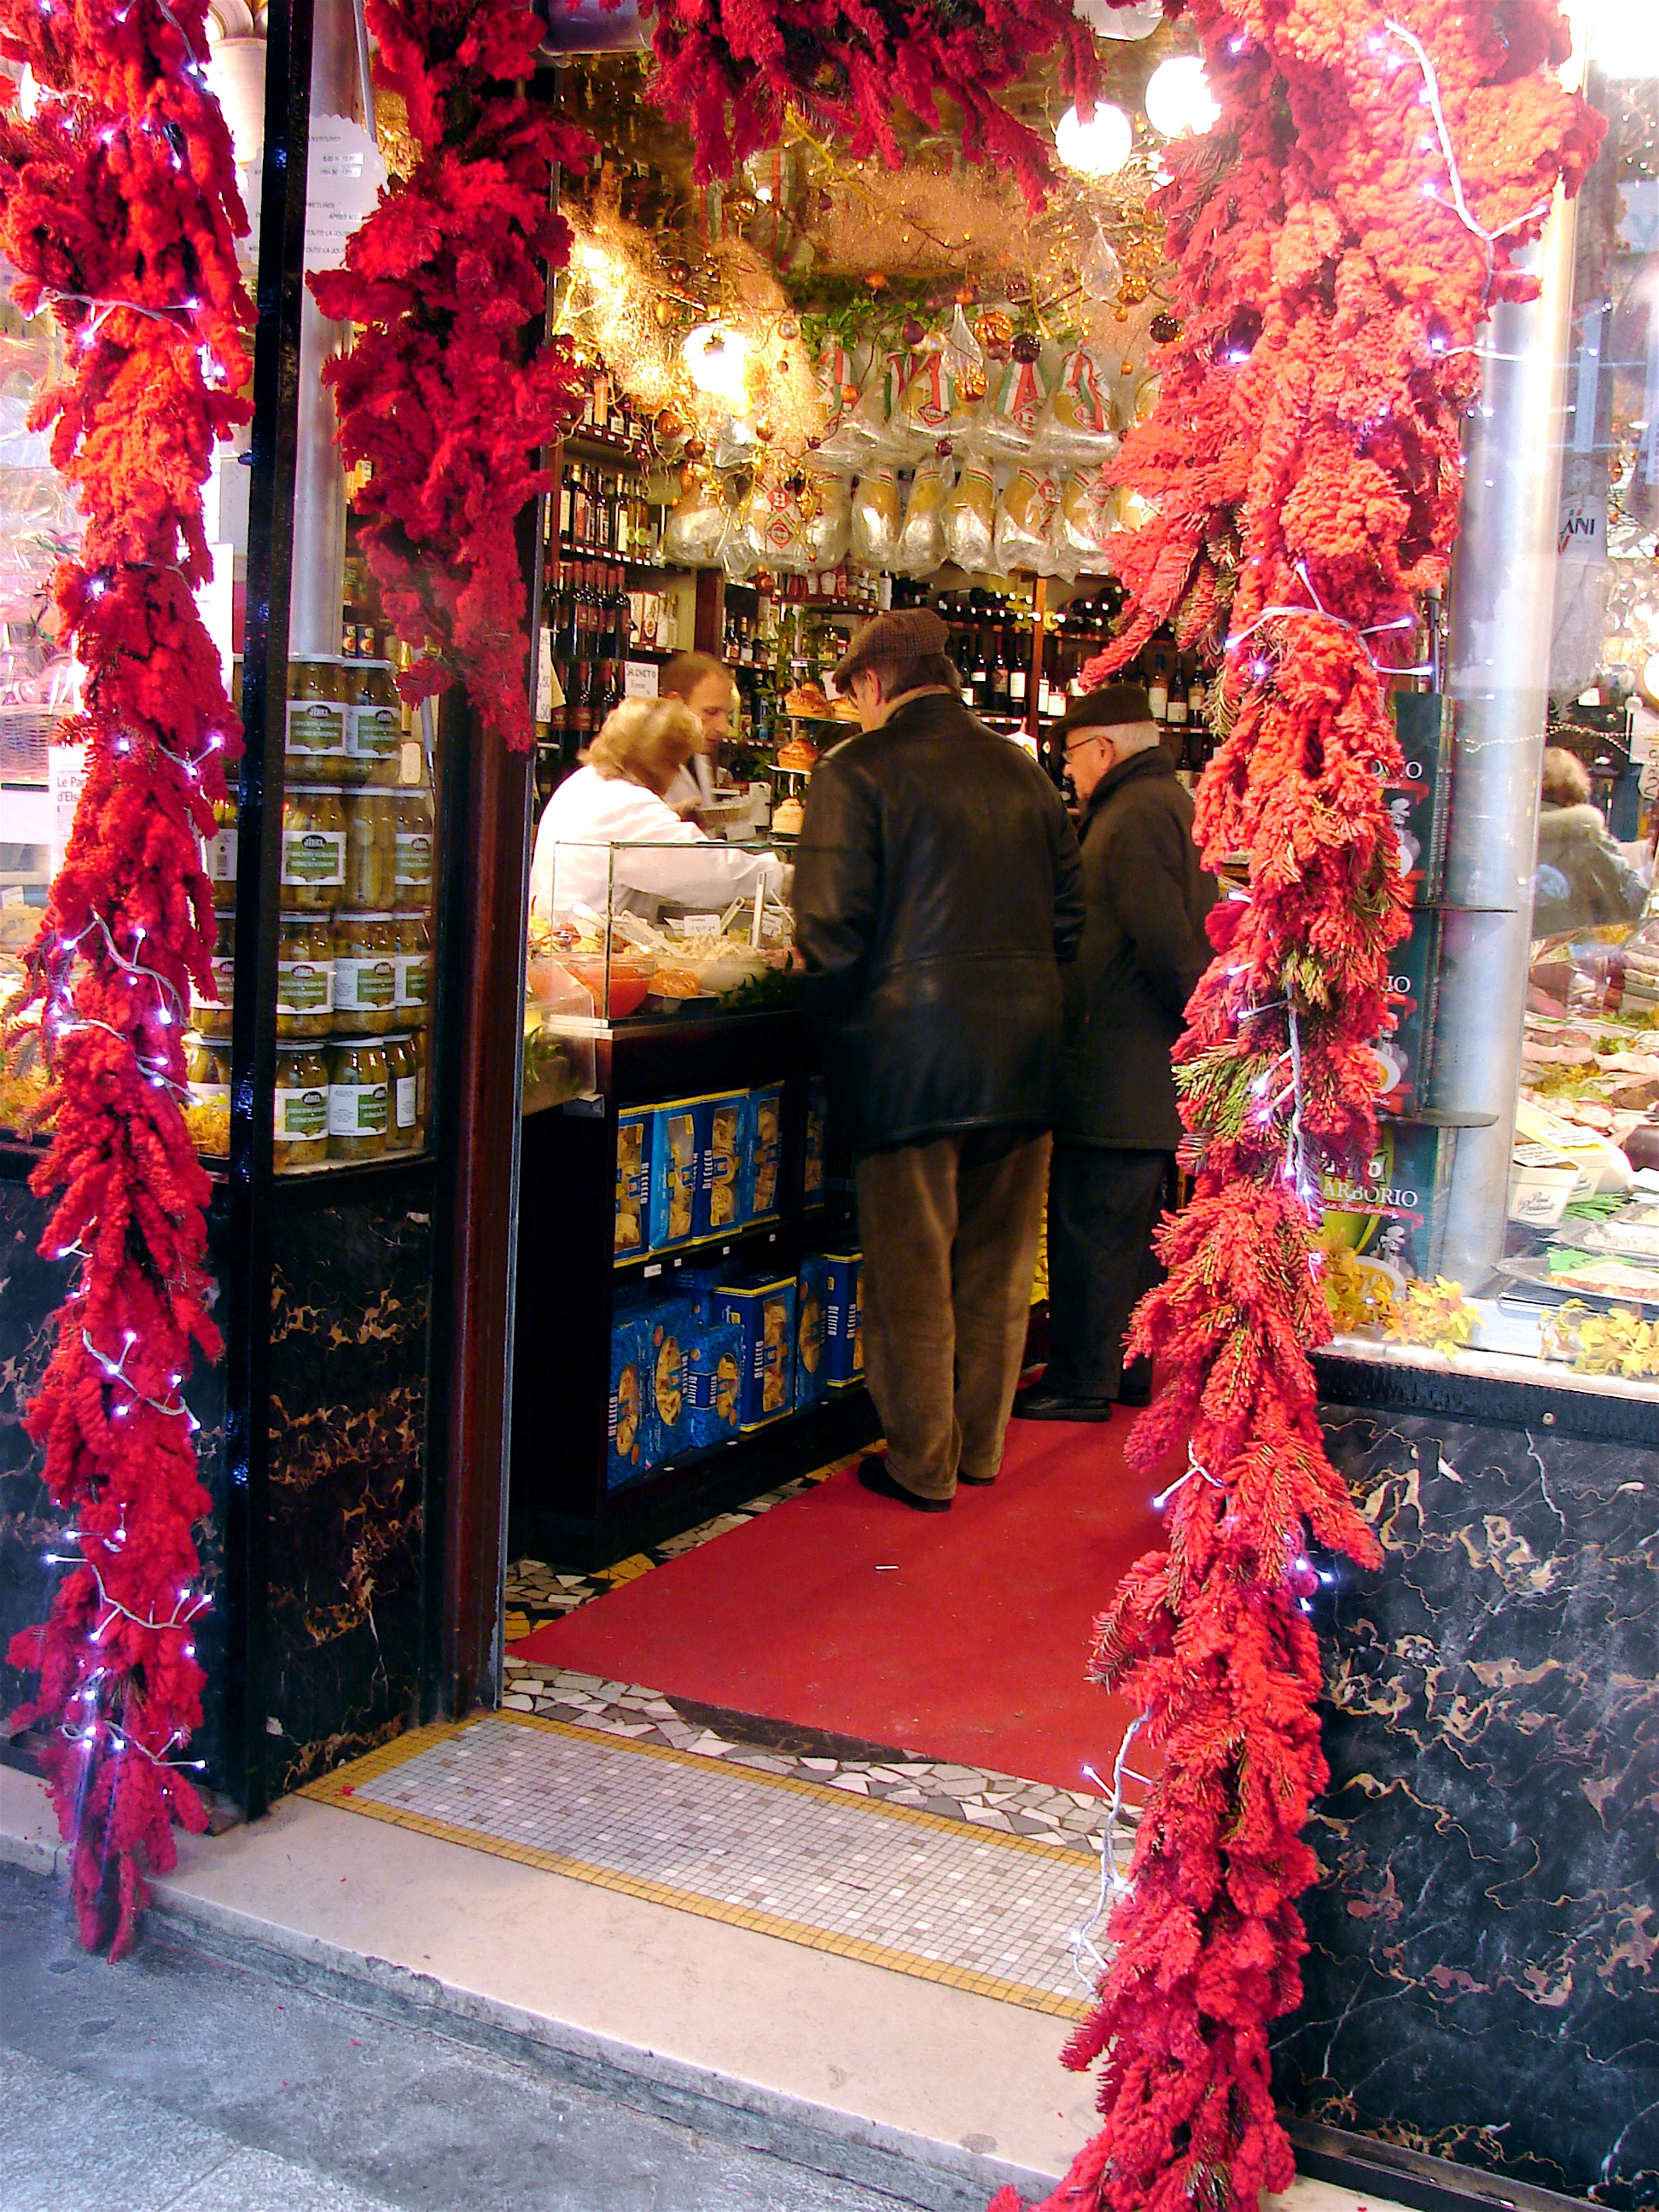 Anything Open On Christmas Day.Chapter Seven Christmas Day In Paris